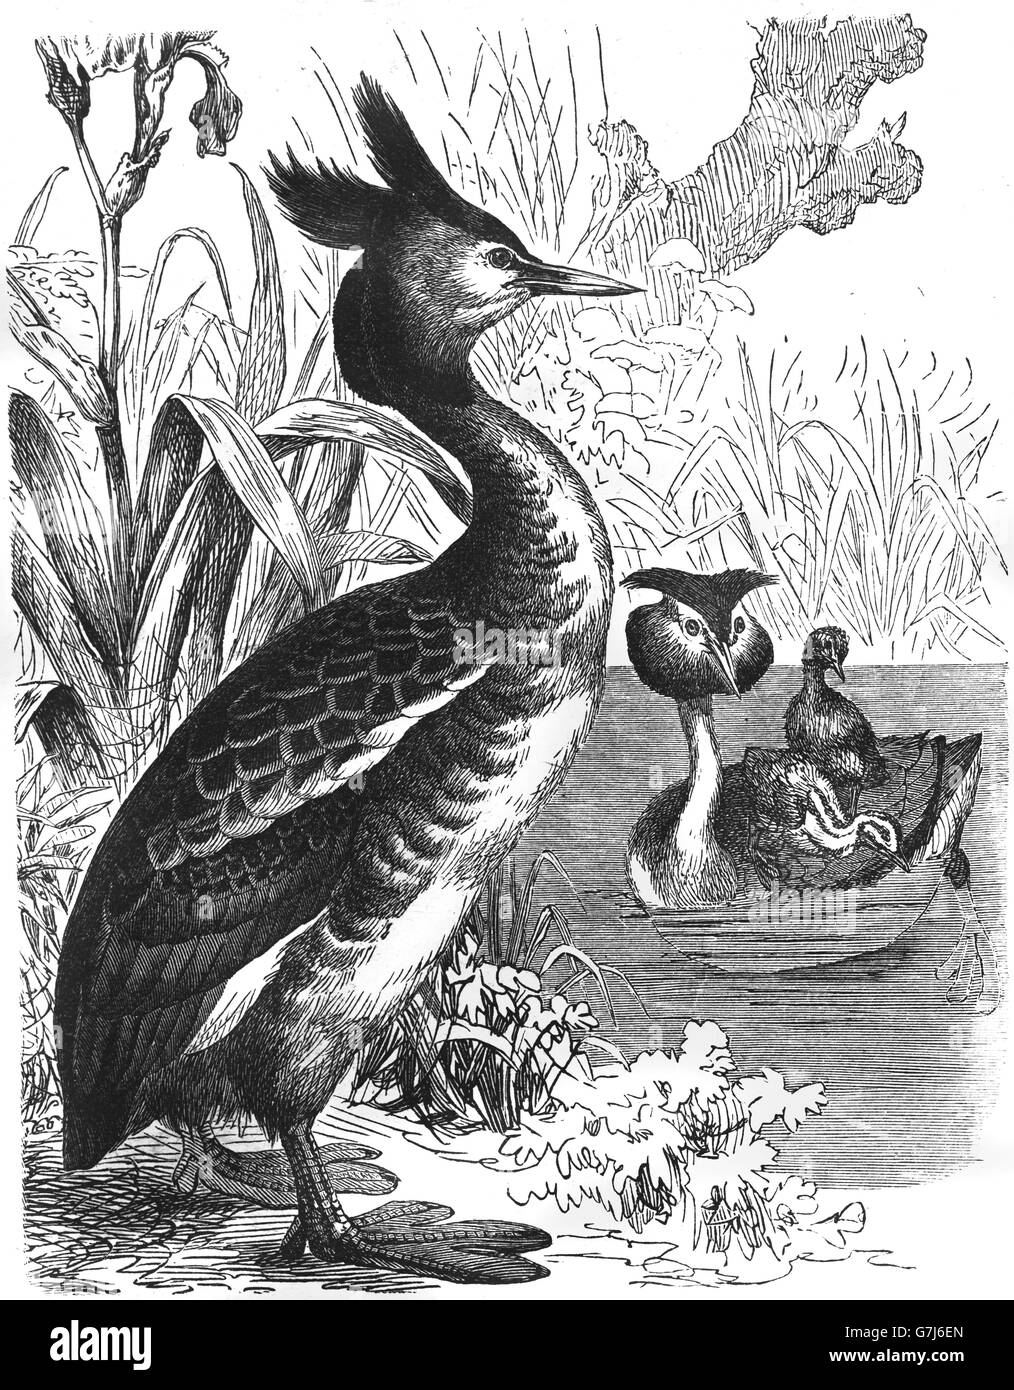 Great crested grebe, Podiceps cristatus, illustration from book dated 1904 - Stock Image